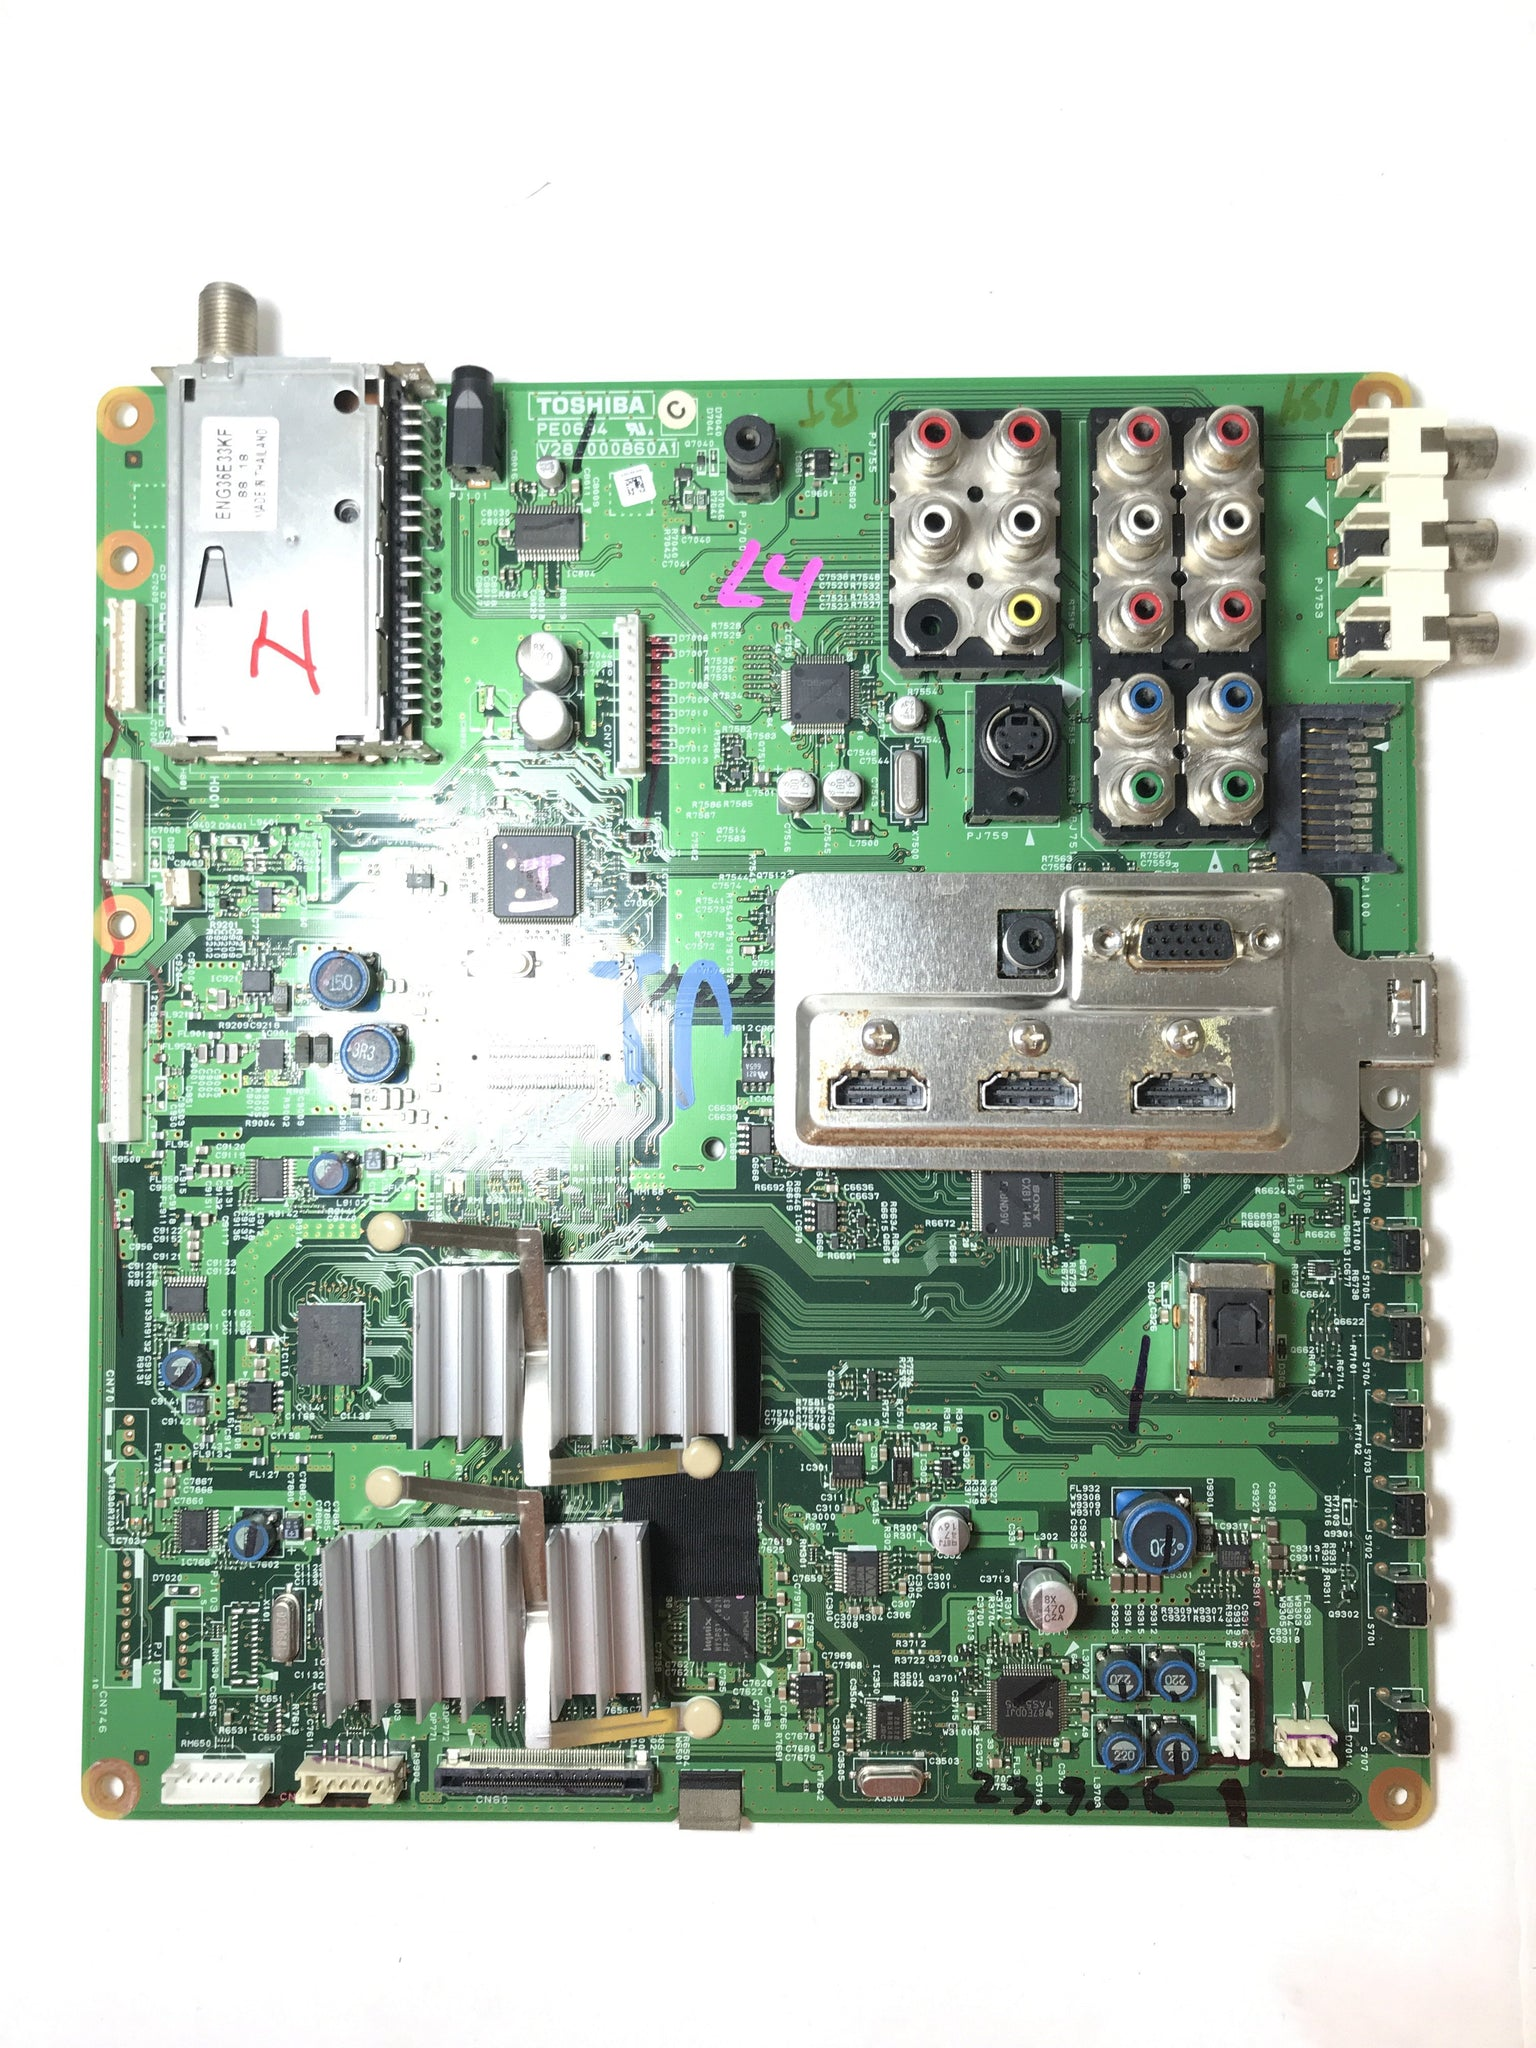 Toshiba 75013208 Main Board for 52RV535U